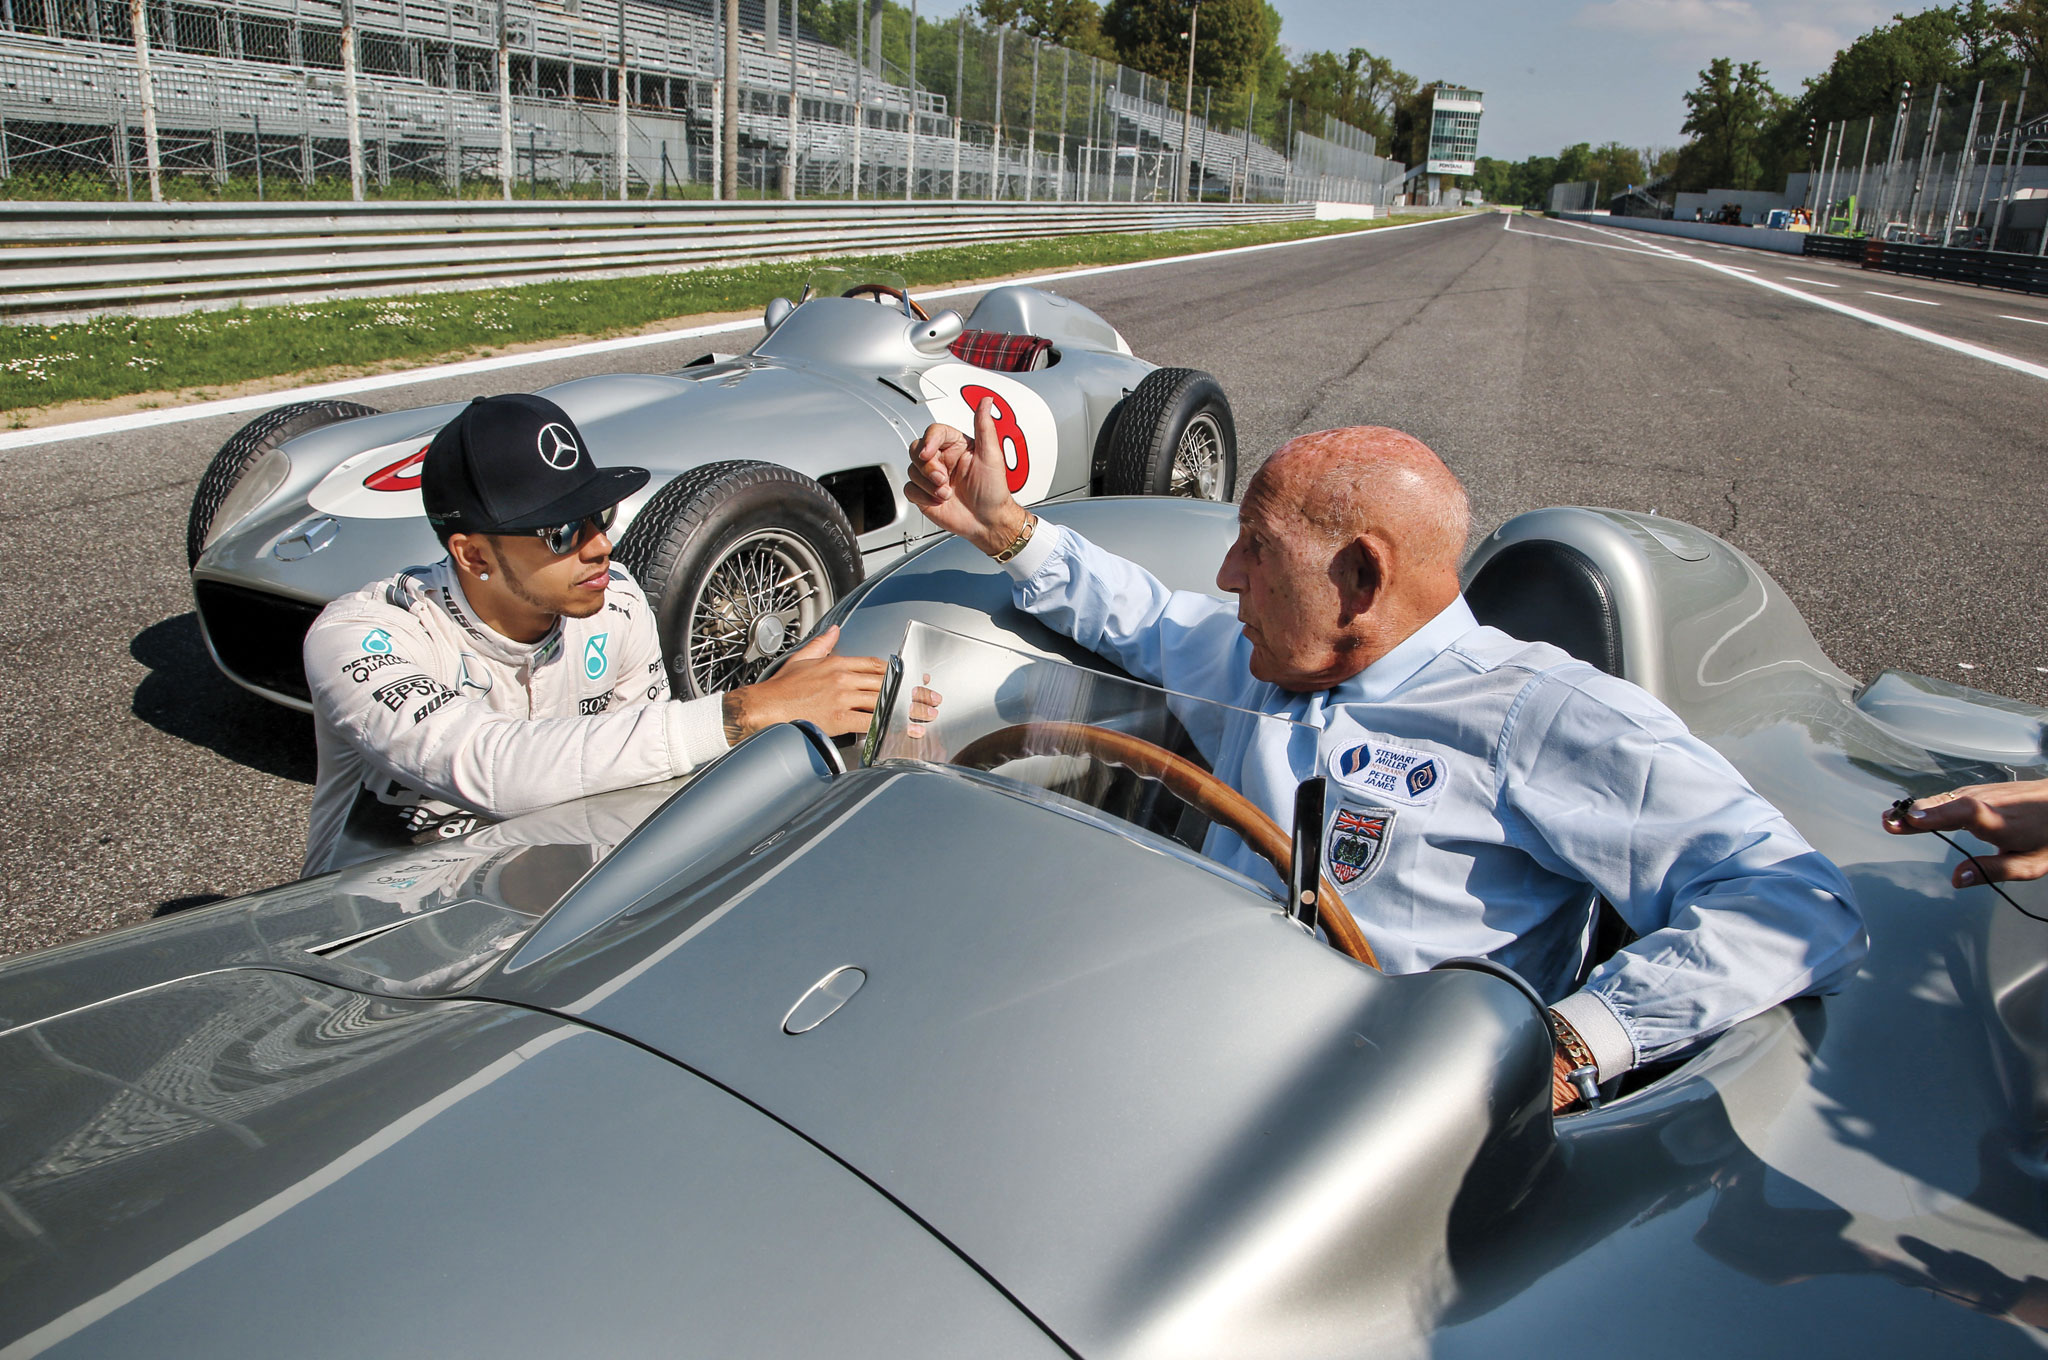 """Moss, the """"greatest driver to never win the Formula 1 world championship,"""" speaks with an attentive Hamilton, who has won two F1 titles, the first in his sophomore season."""